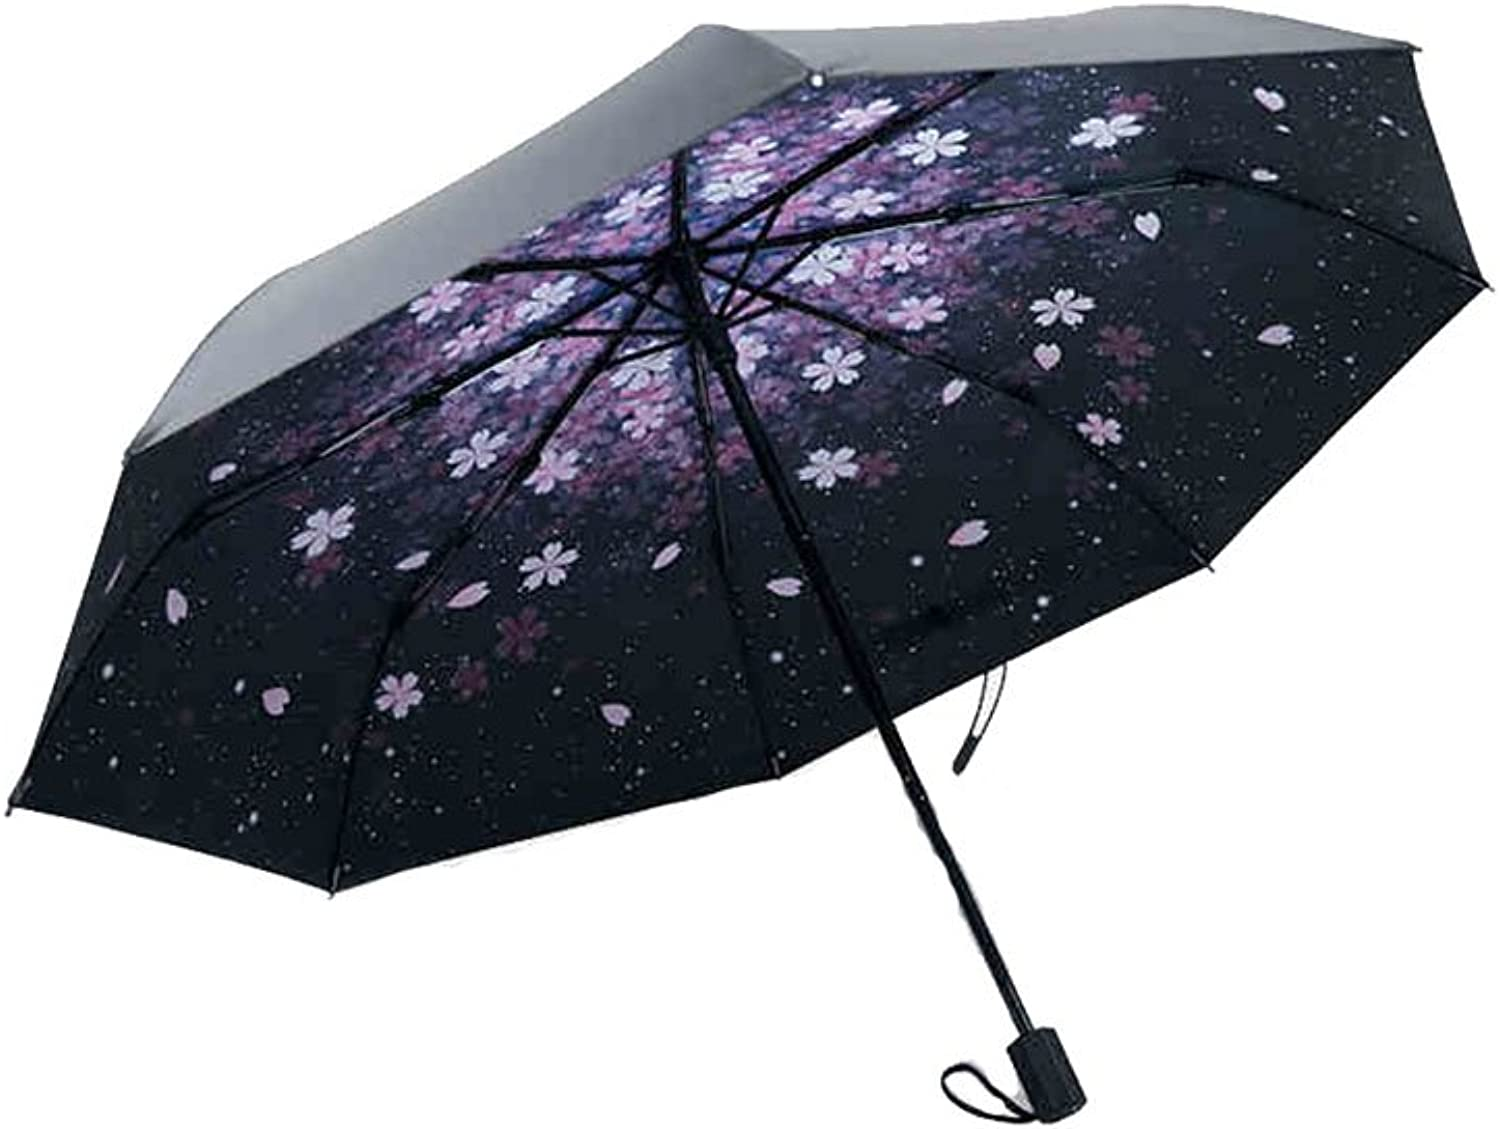 Sun Umbrellas UV Predection 50% Off Umbrellas Umbrellas Dualuse Folding UltraLight Black Umbrella